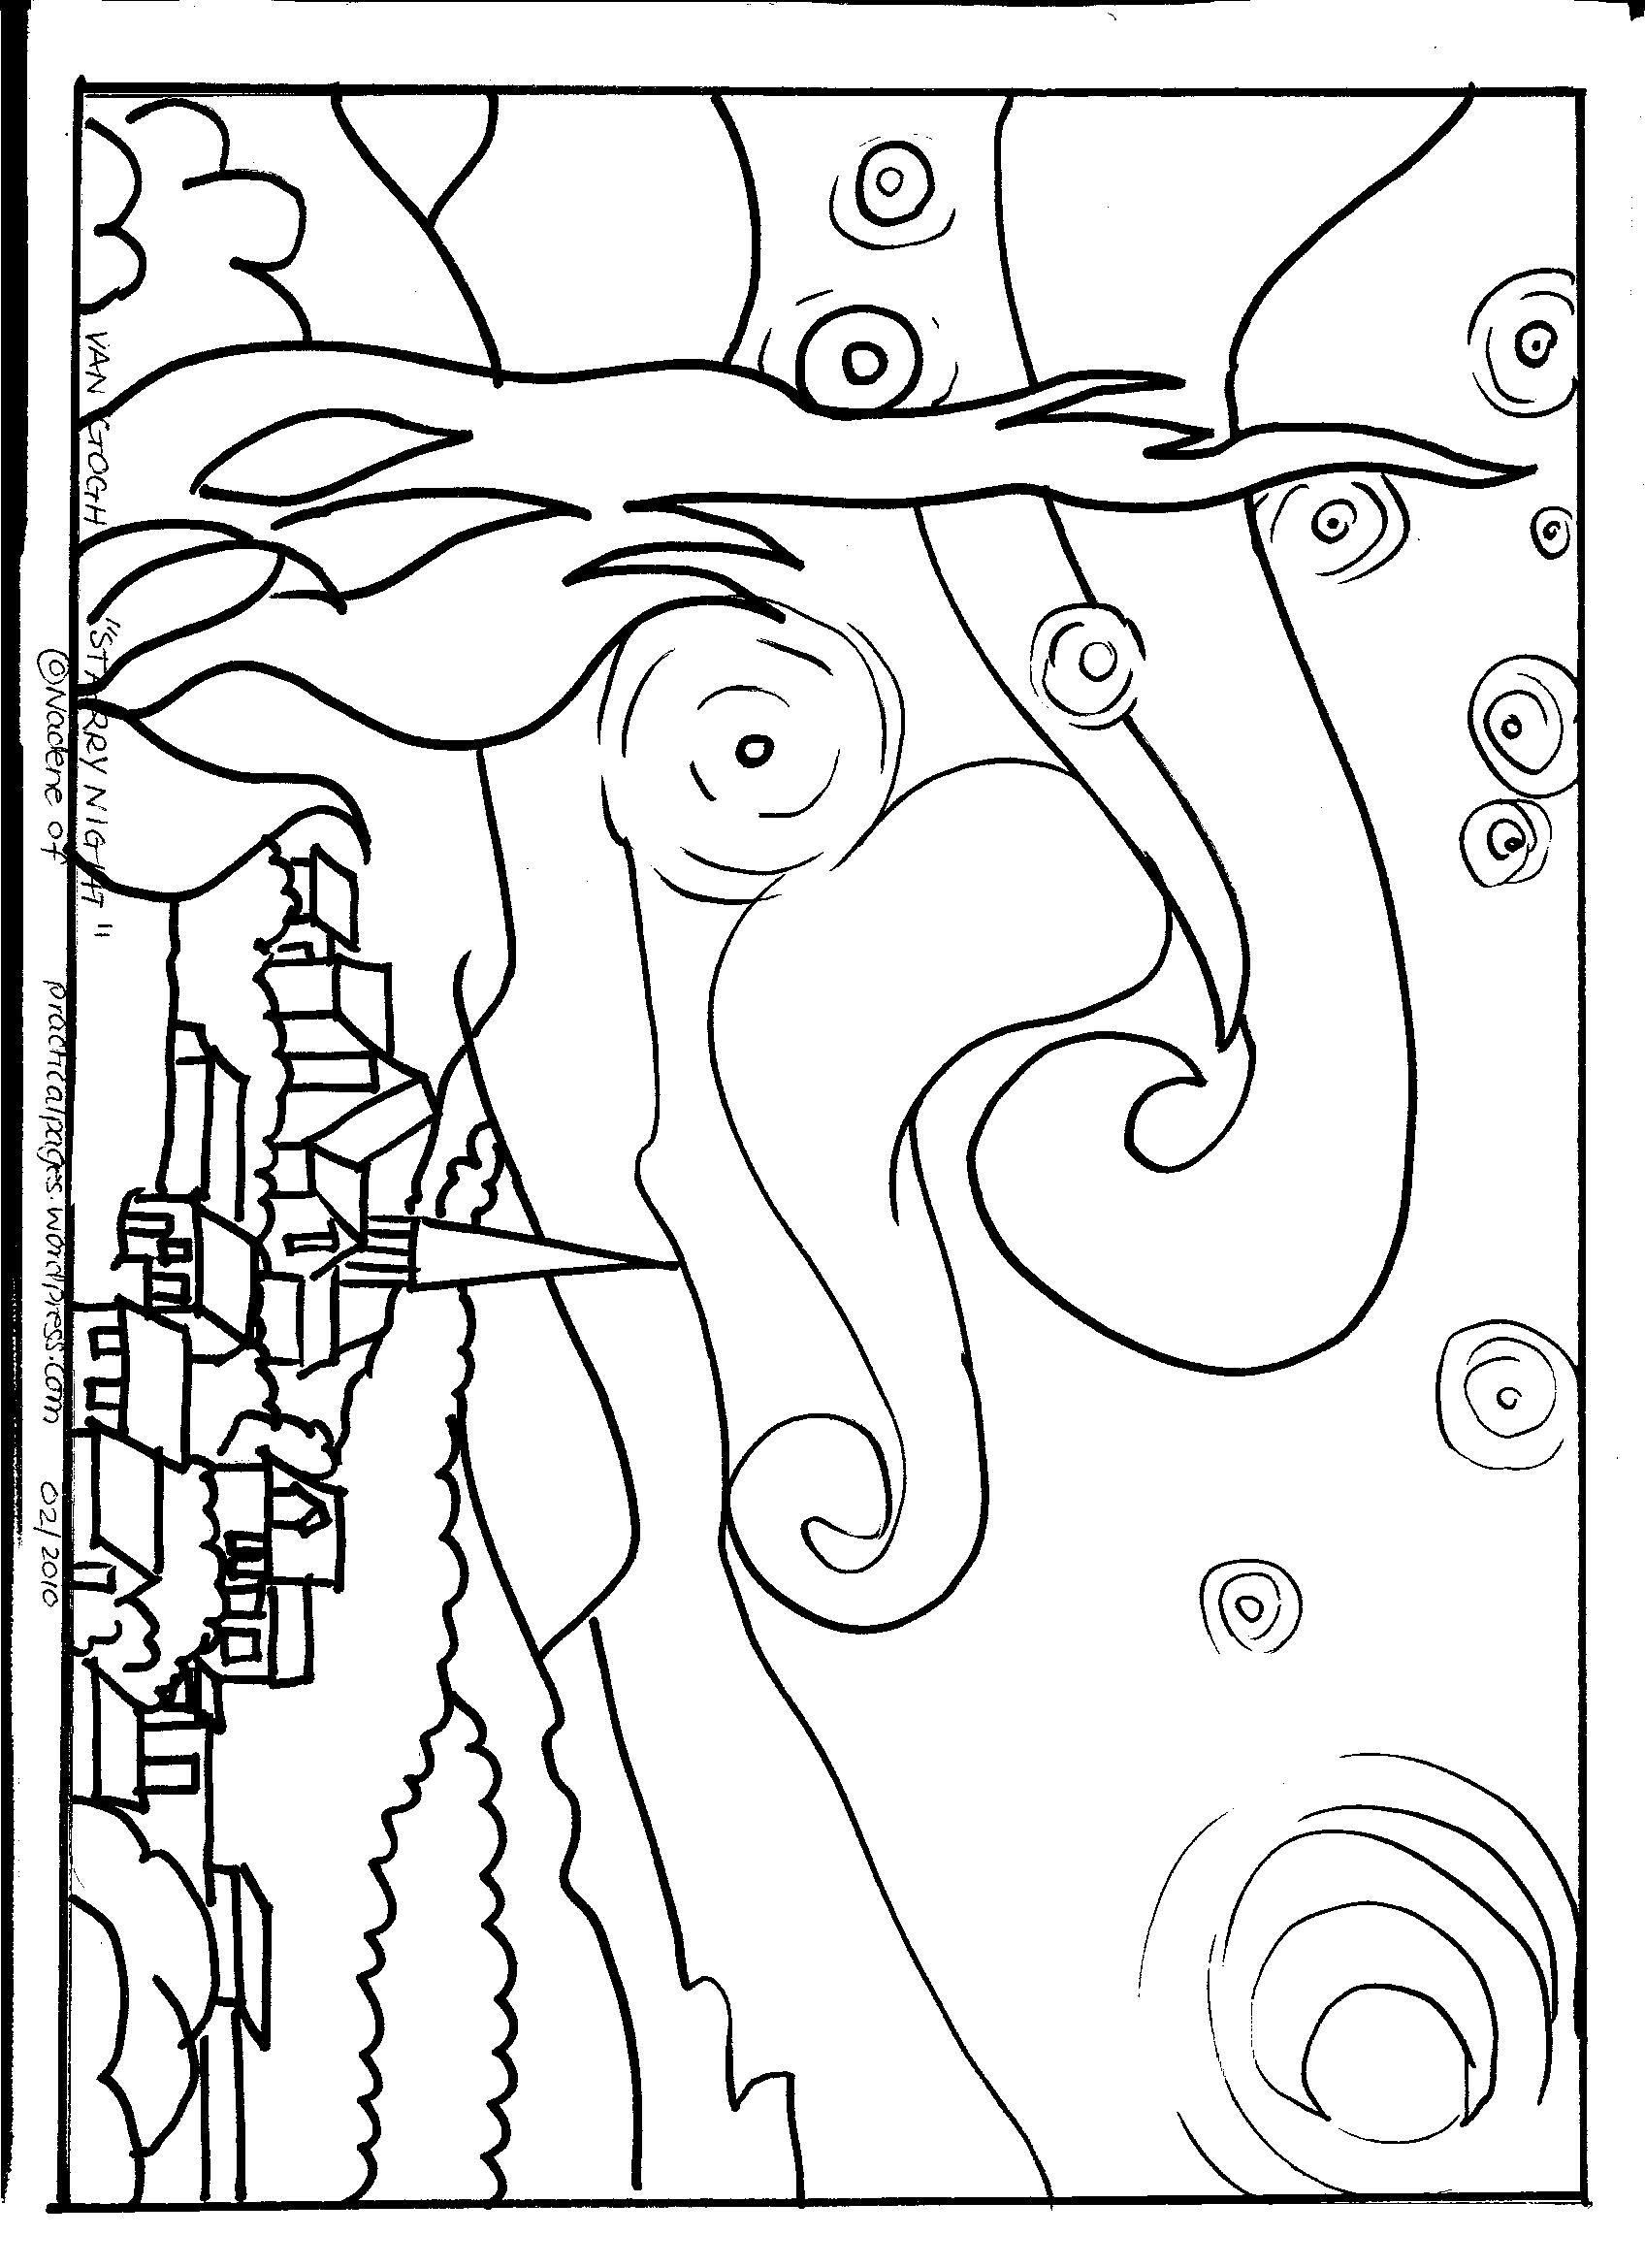 Tracing Outlines Of Famous Art Works